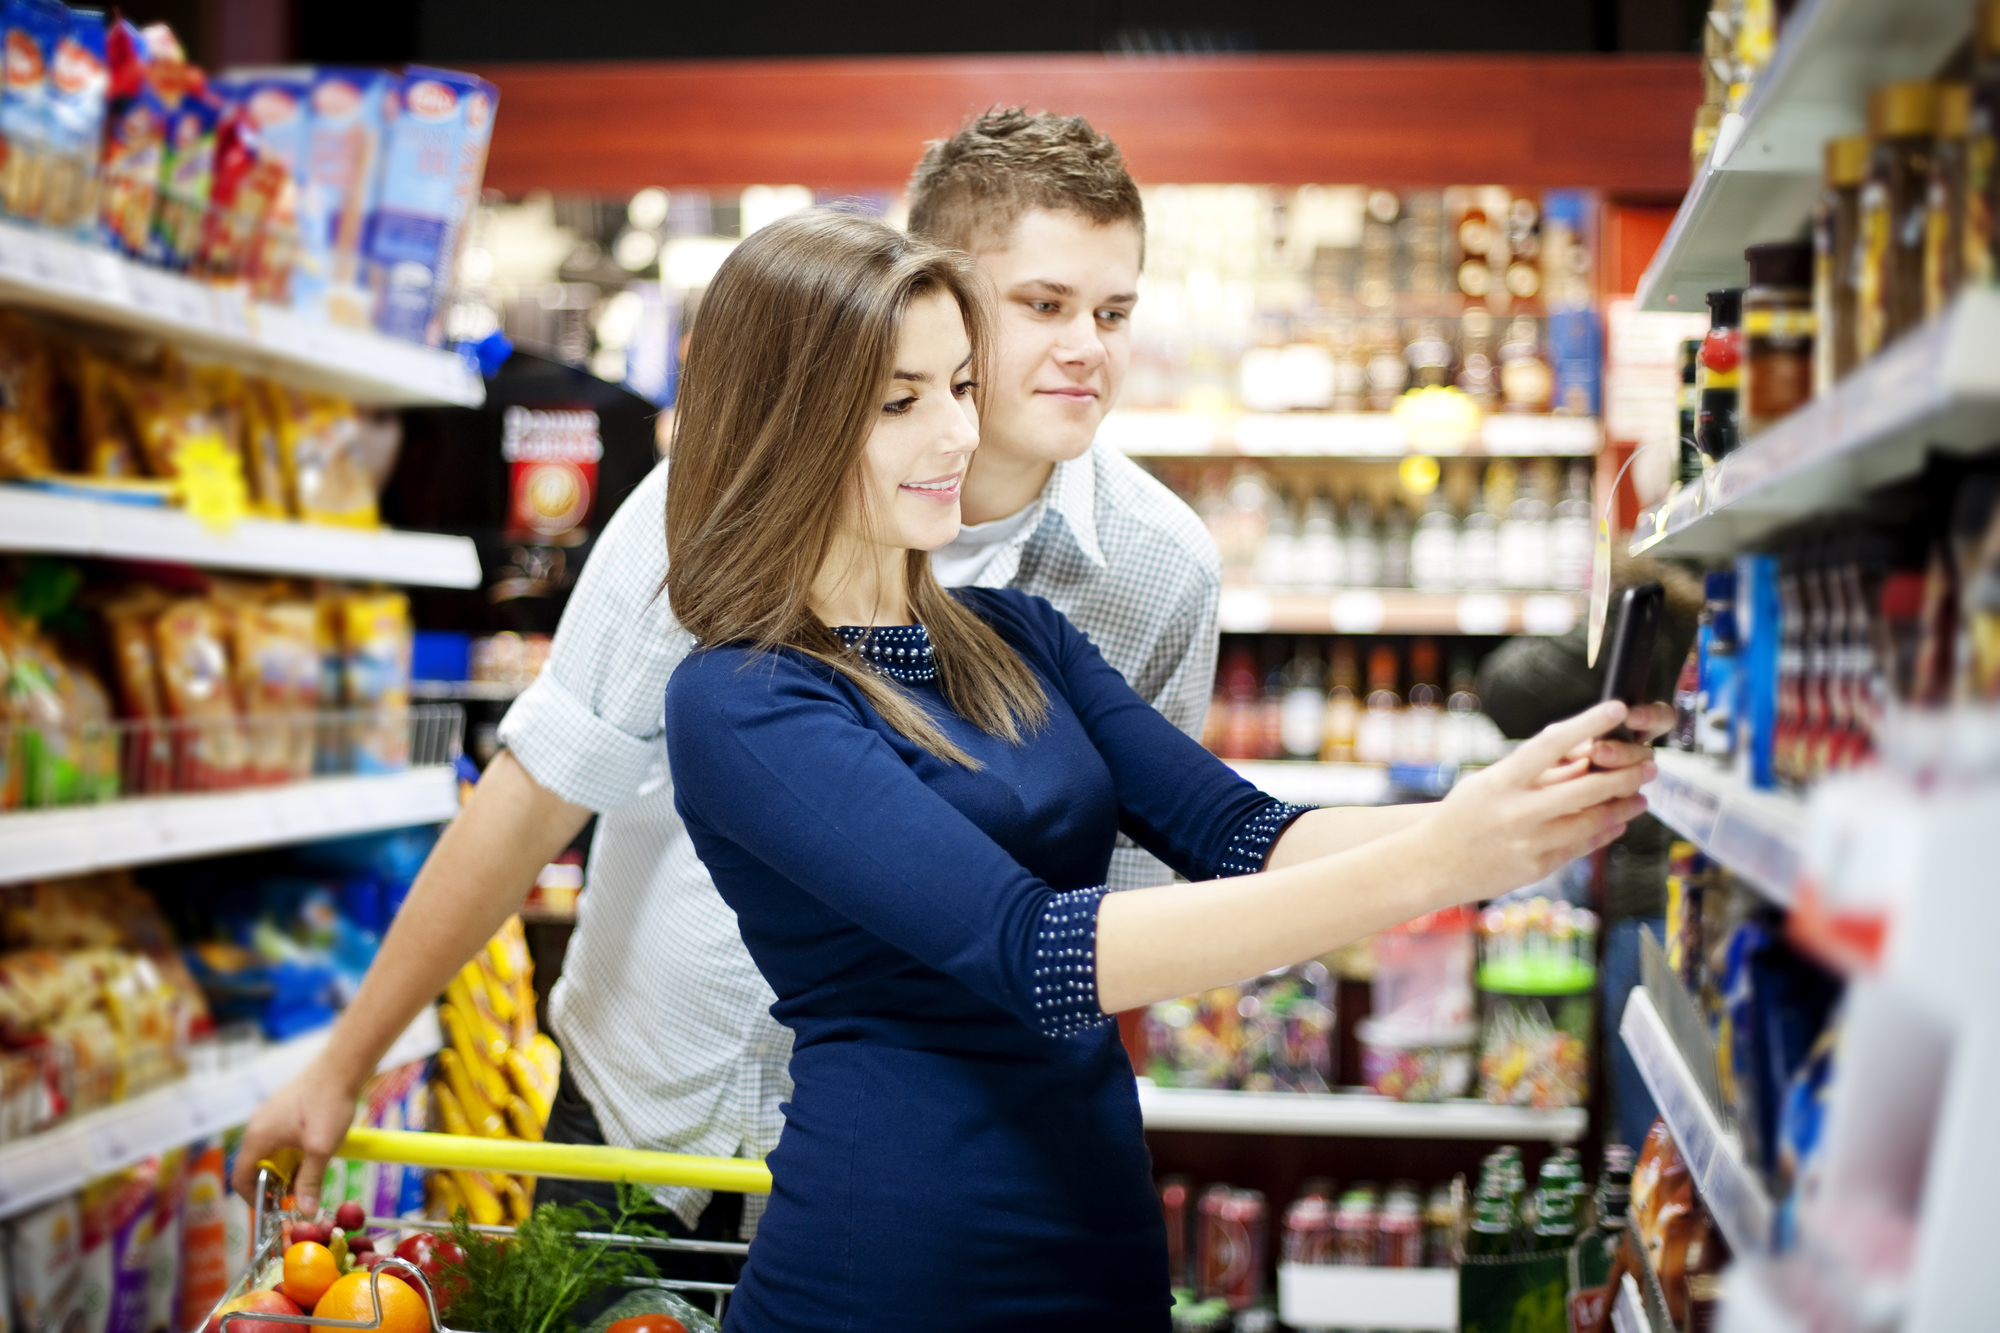 Some apps will pay you to grocery shop